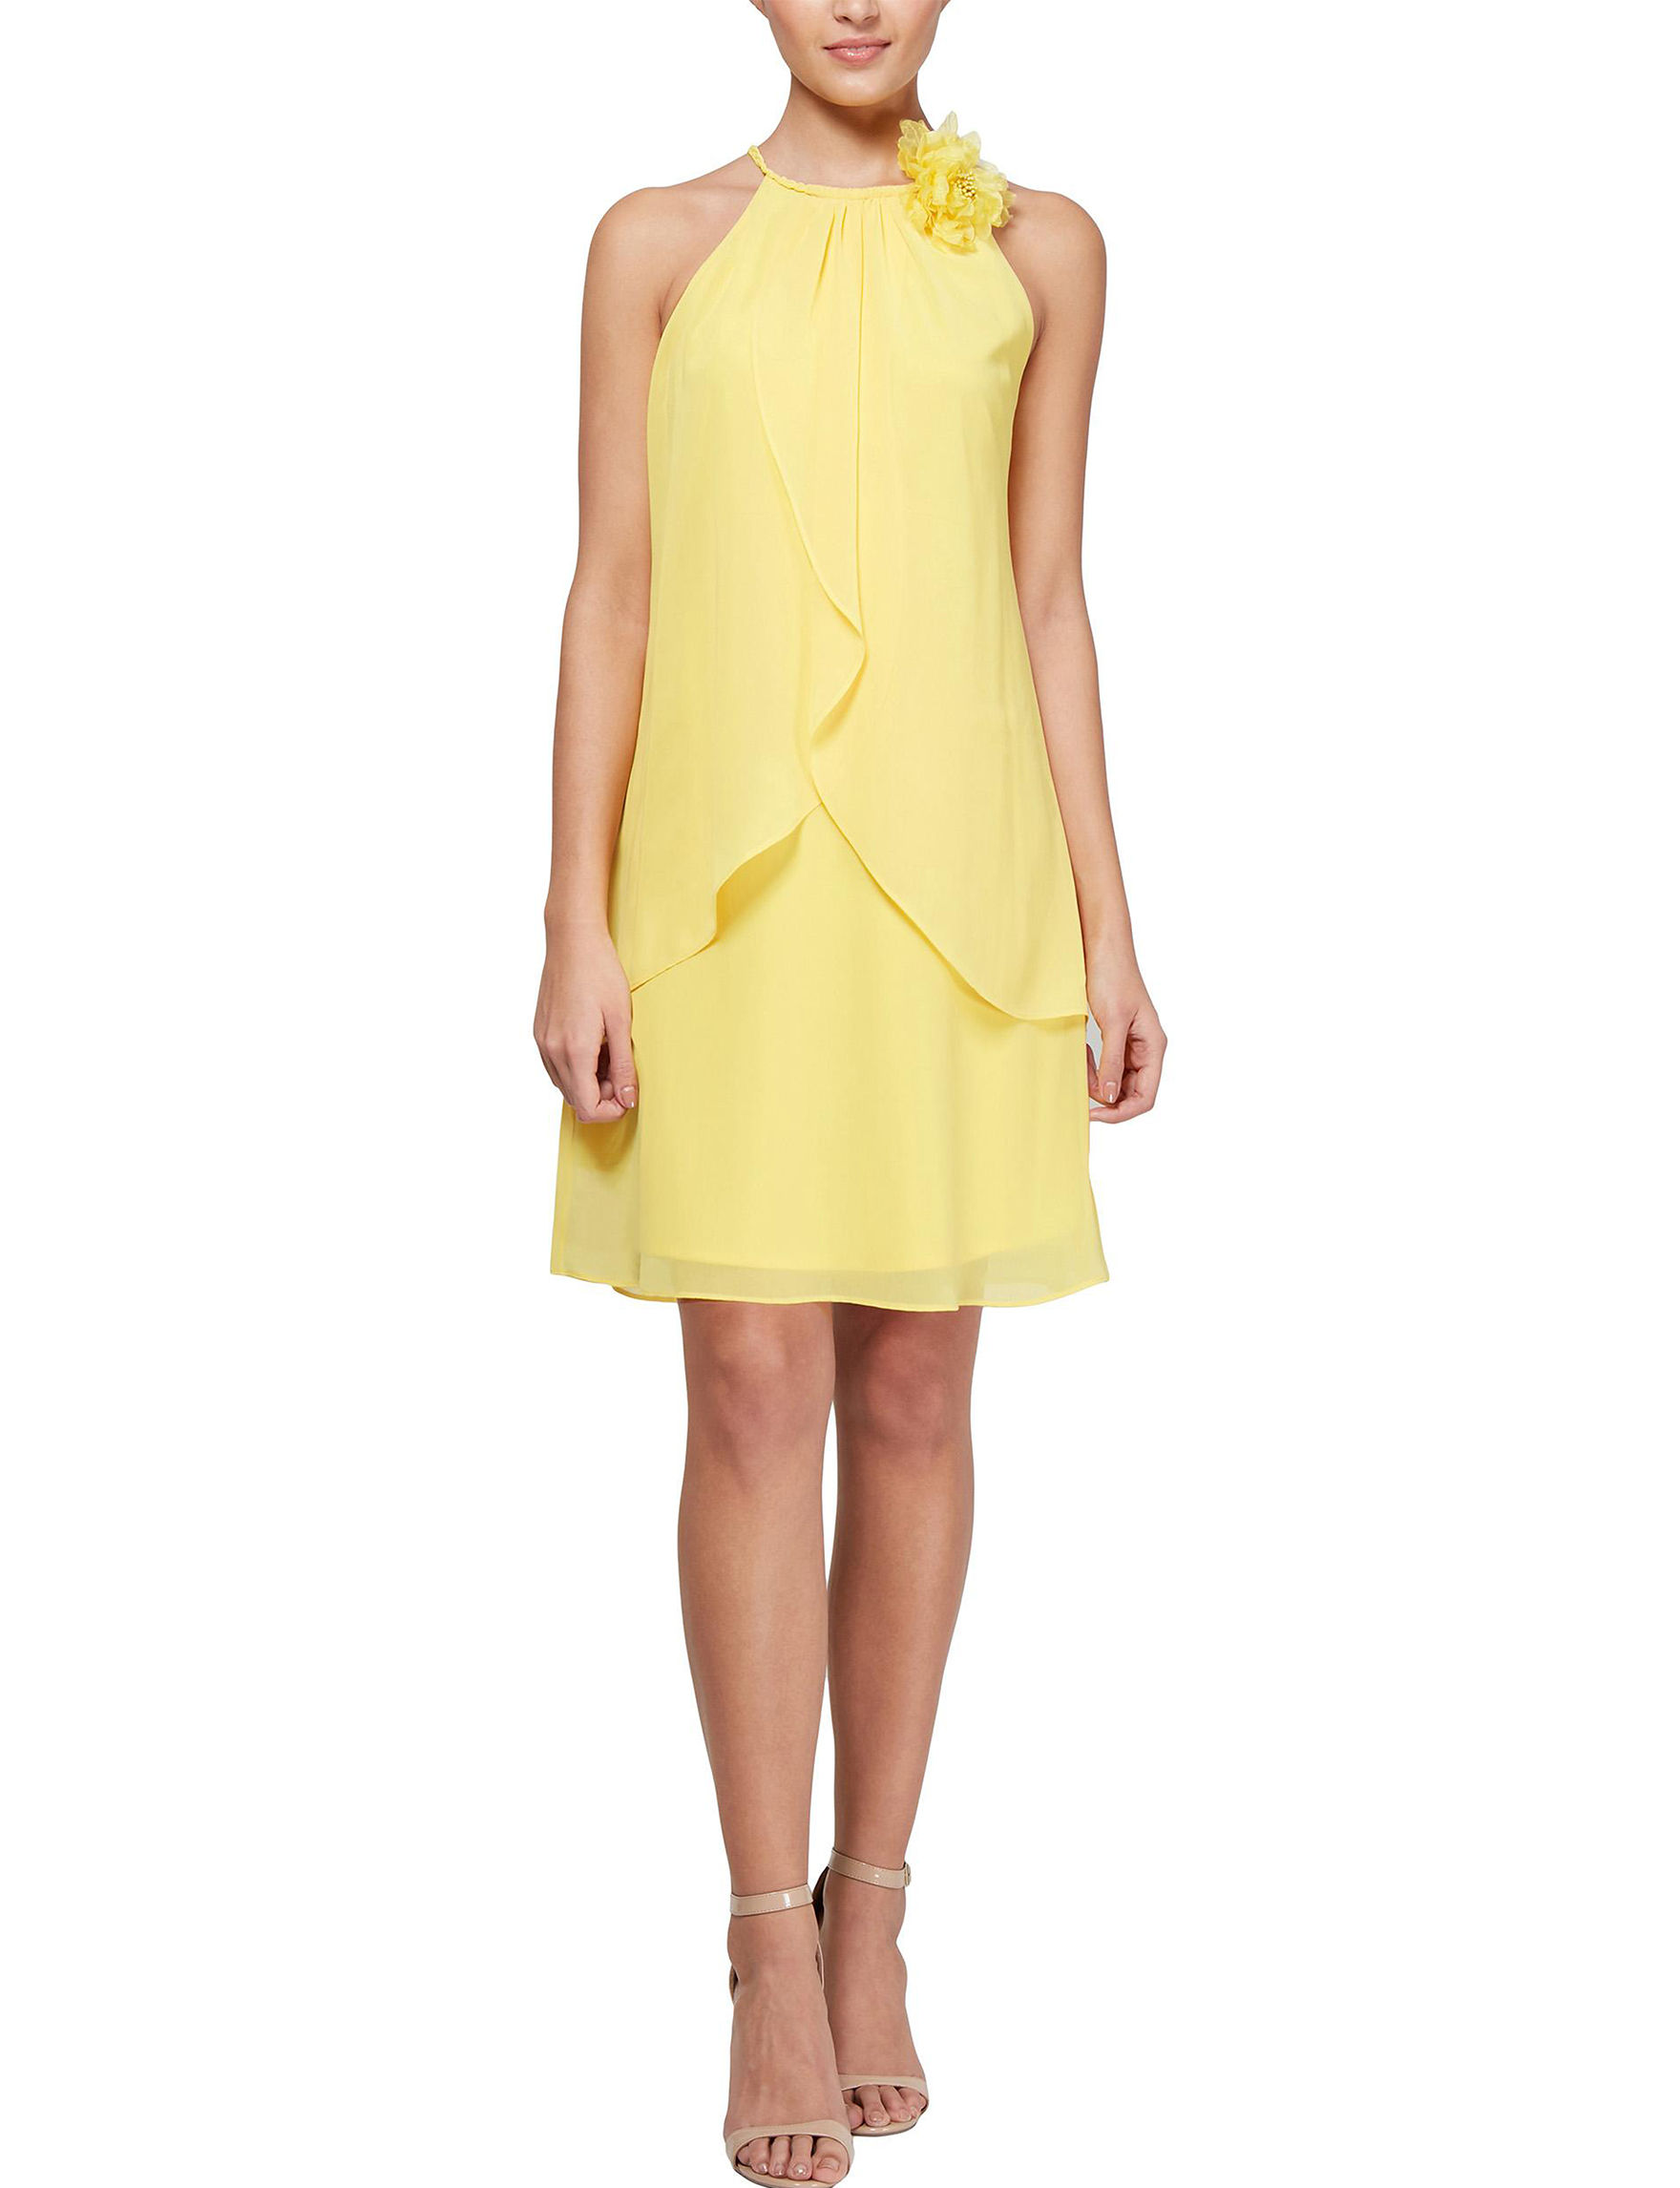 S.L. Fashions Yellow Cocktail & Party Evening & Formal Shift Dresses